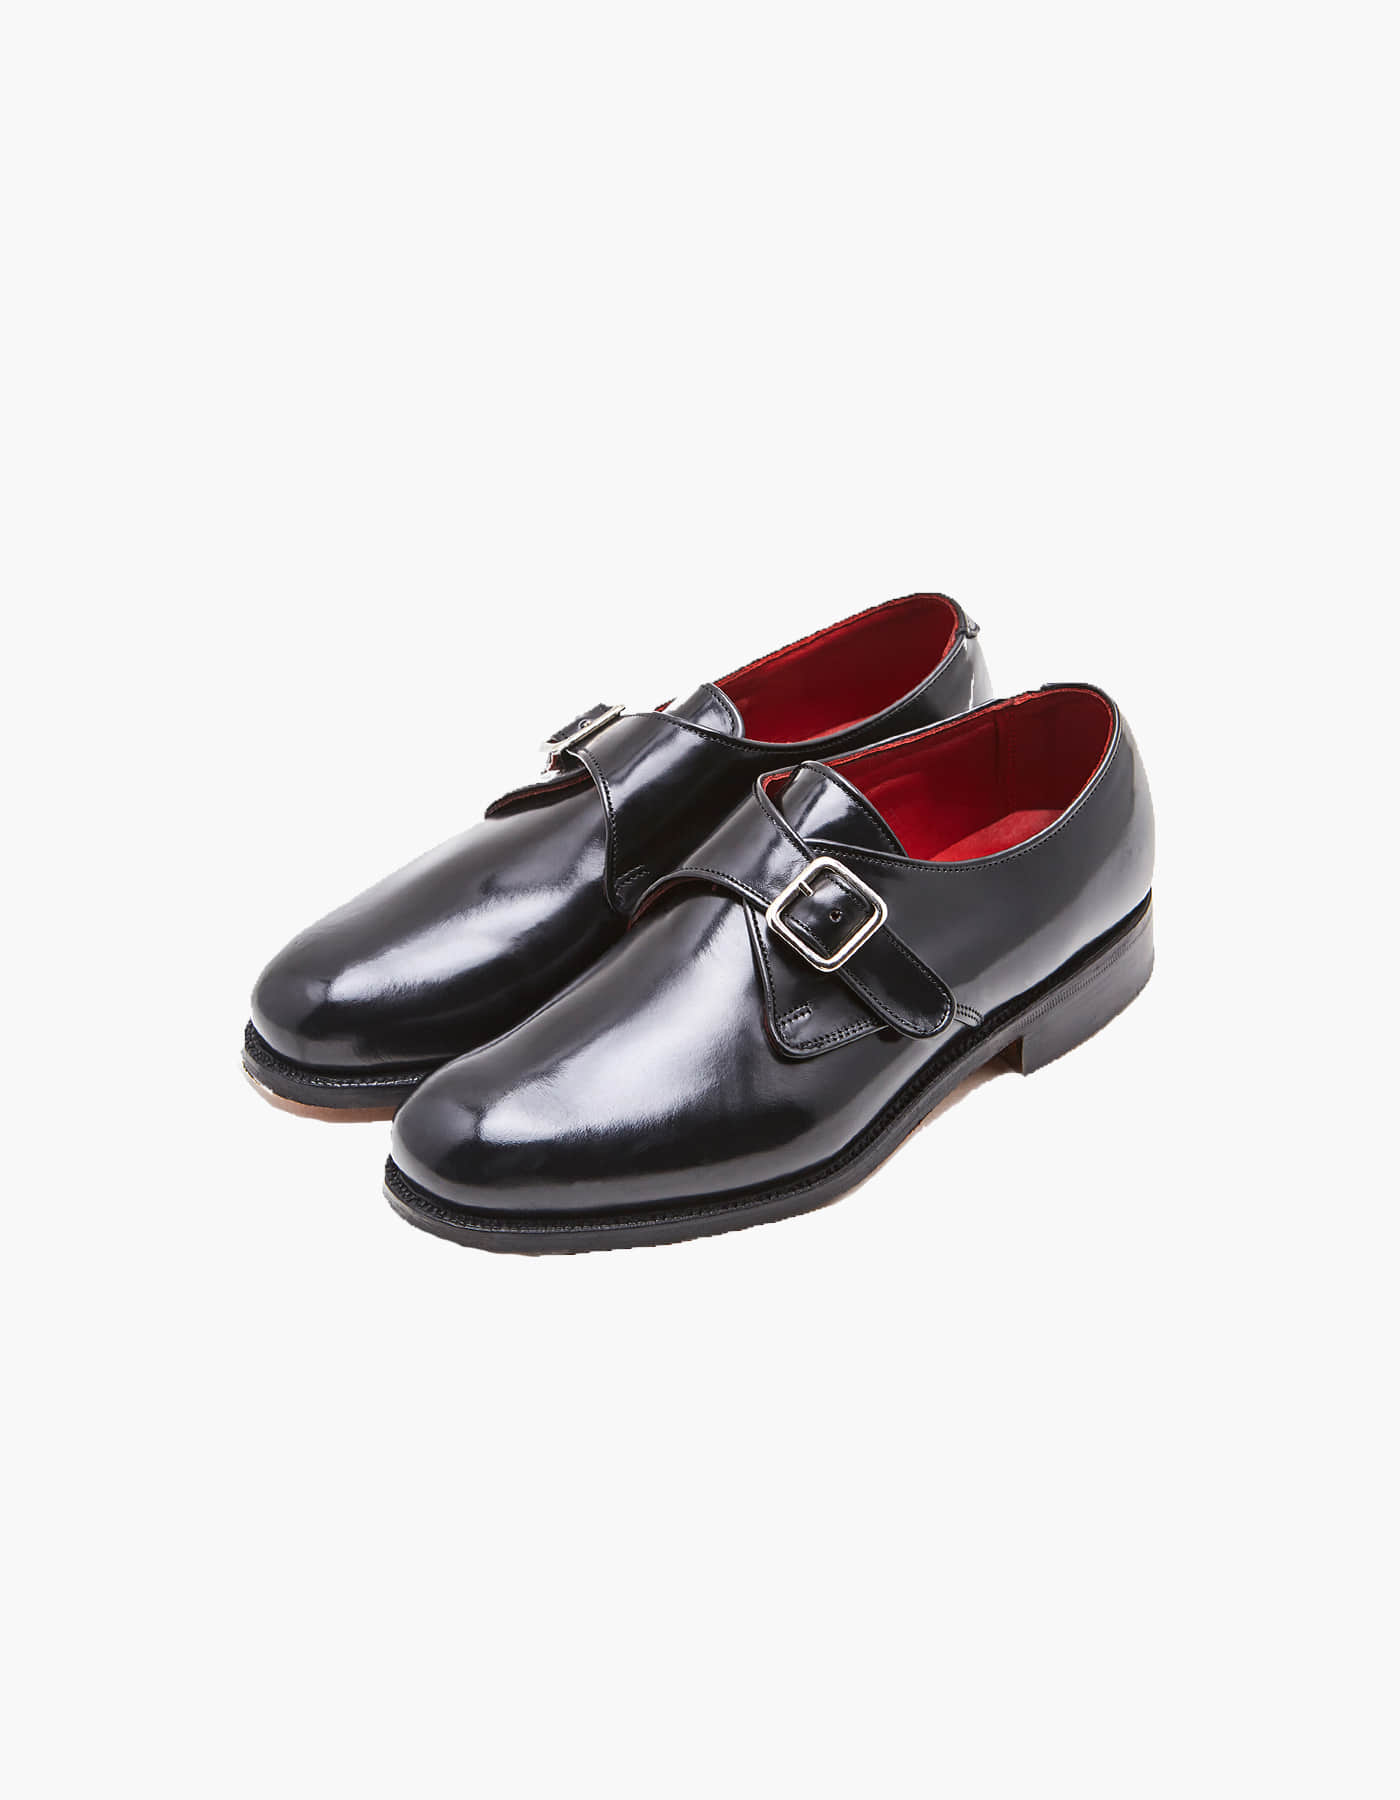 TRICKER'S X HERITAGEFLOSS MAYFAIR (W) / BLACK